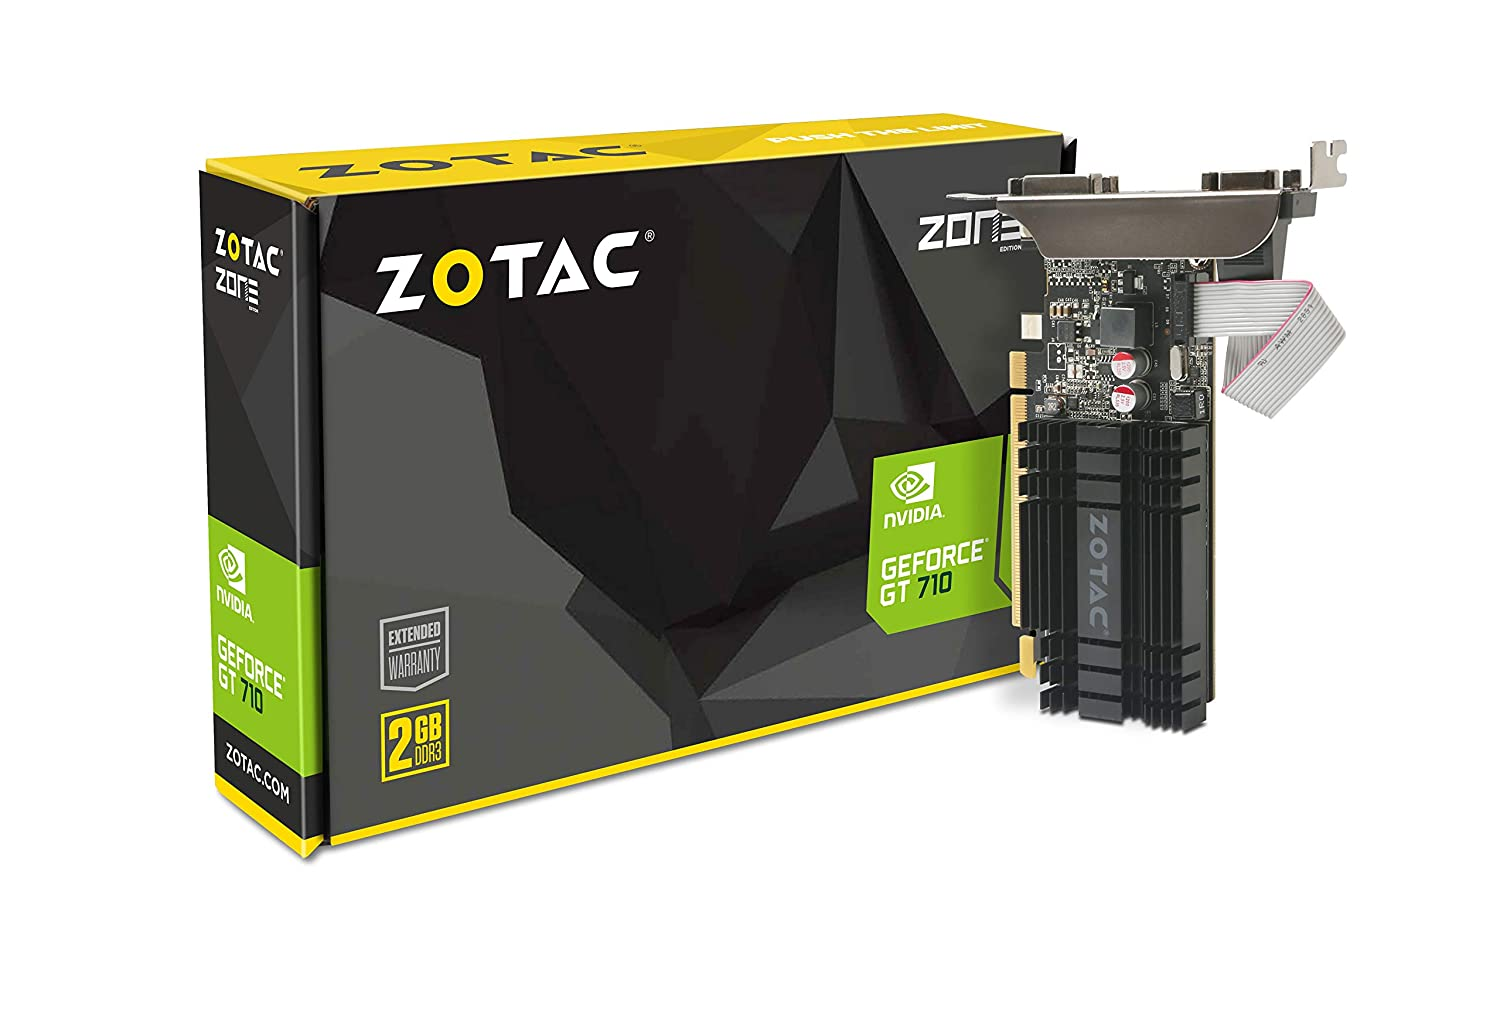 ZOTAC GeForce GT 710 2GB DDR3 PCI-E2.0 DL-DVI VGA HDMI Passive Cooled Single Slot Low Profile Graphics Card (ZT-71302-20L)